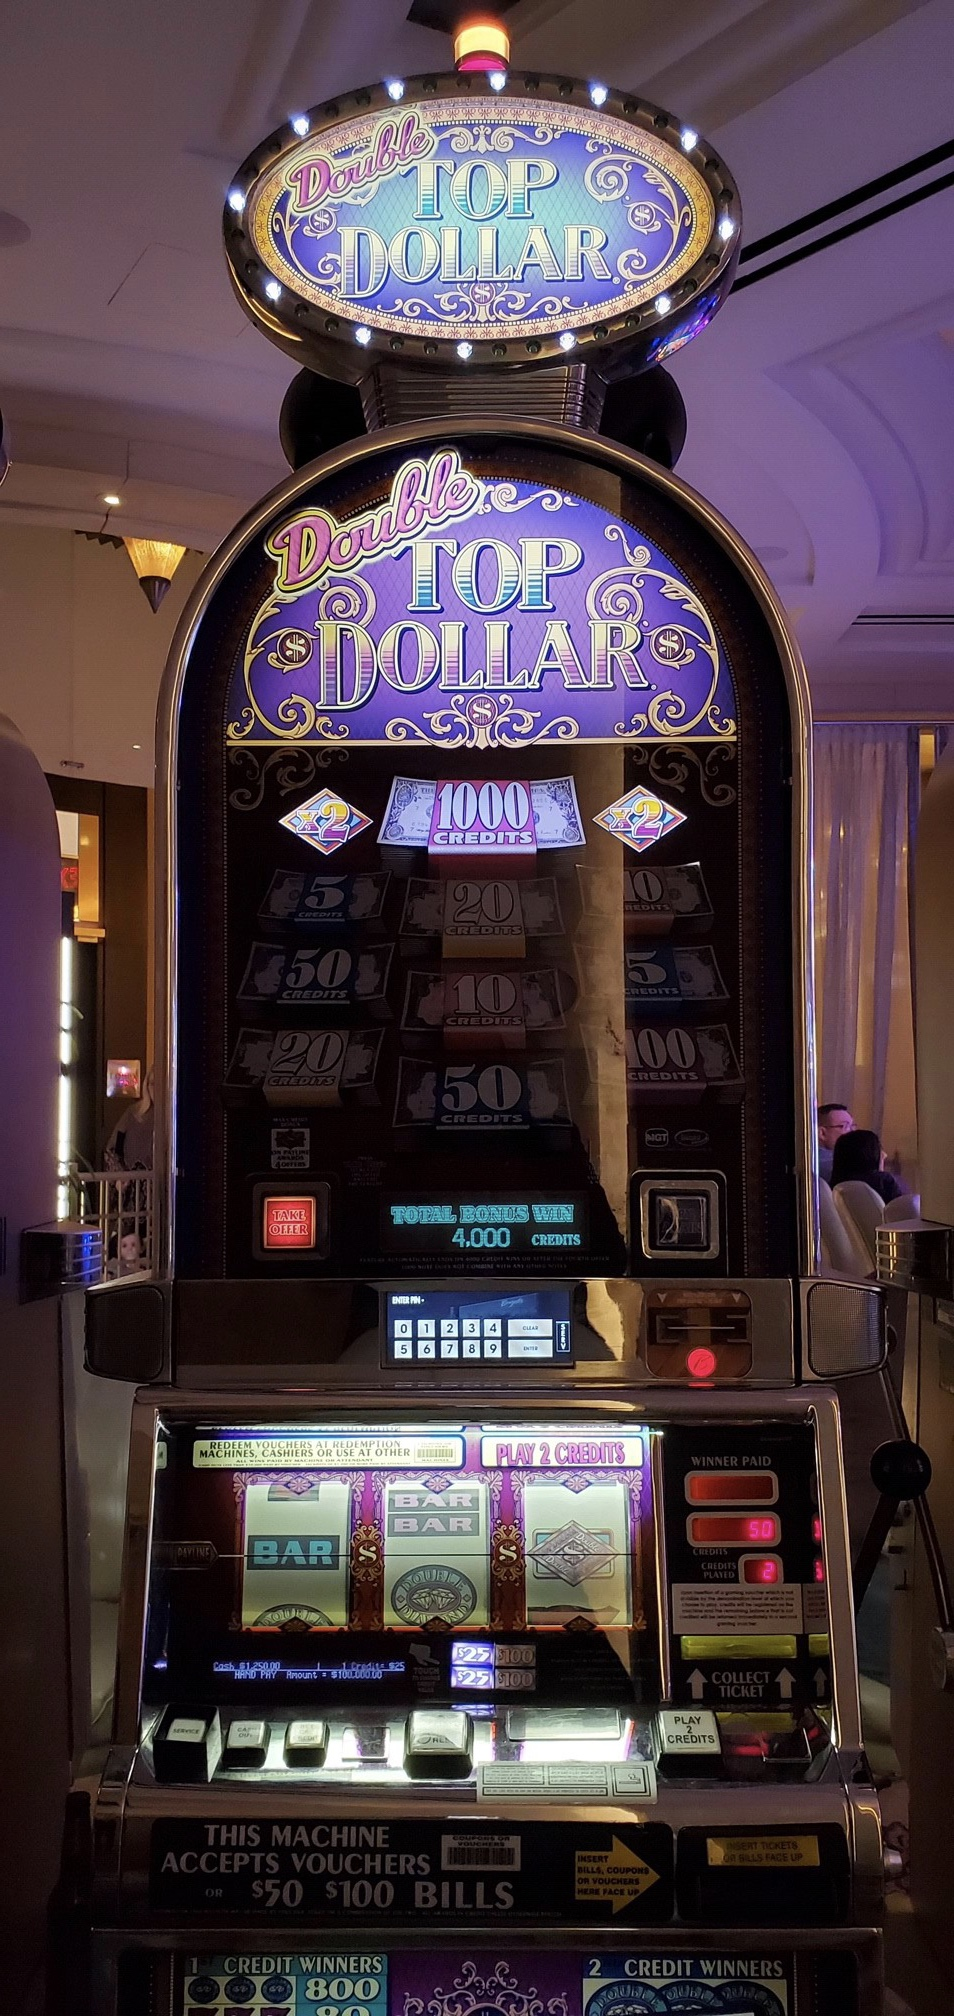 Play slot machines in vegas